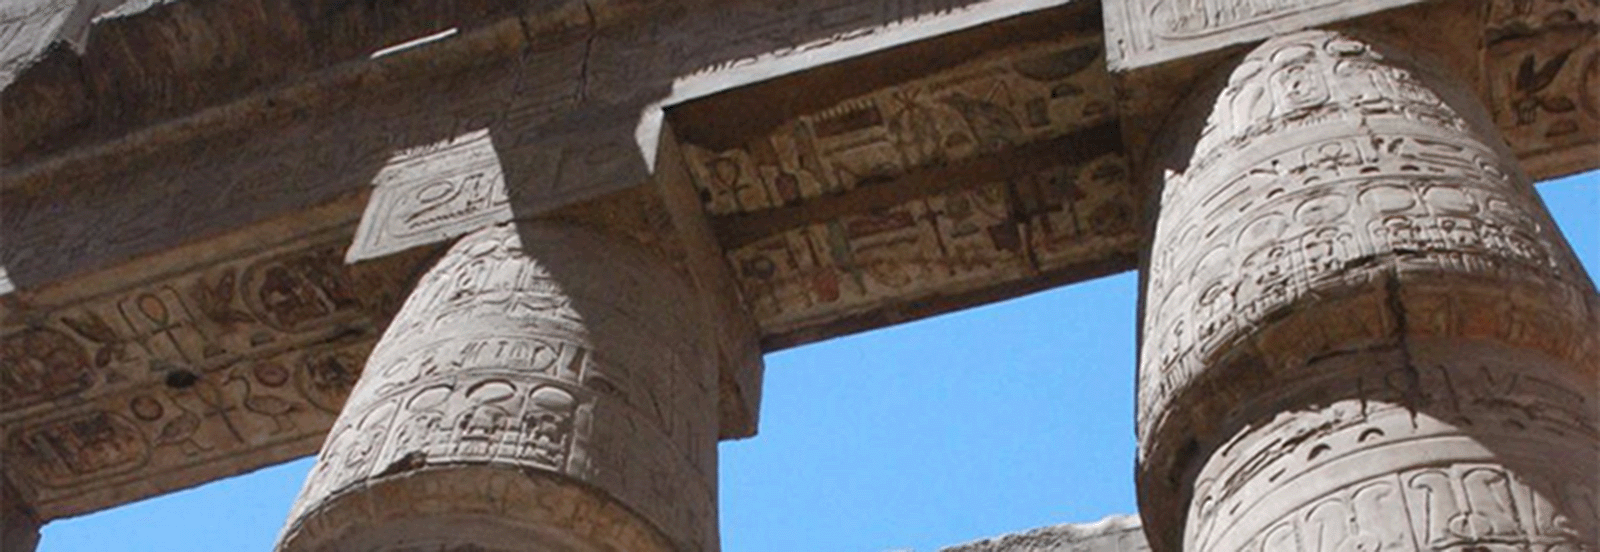 Karnak Great Hypostyle Hall - columns upheld a roof consisting of networks of massive stone beams called architraves